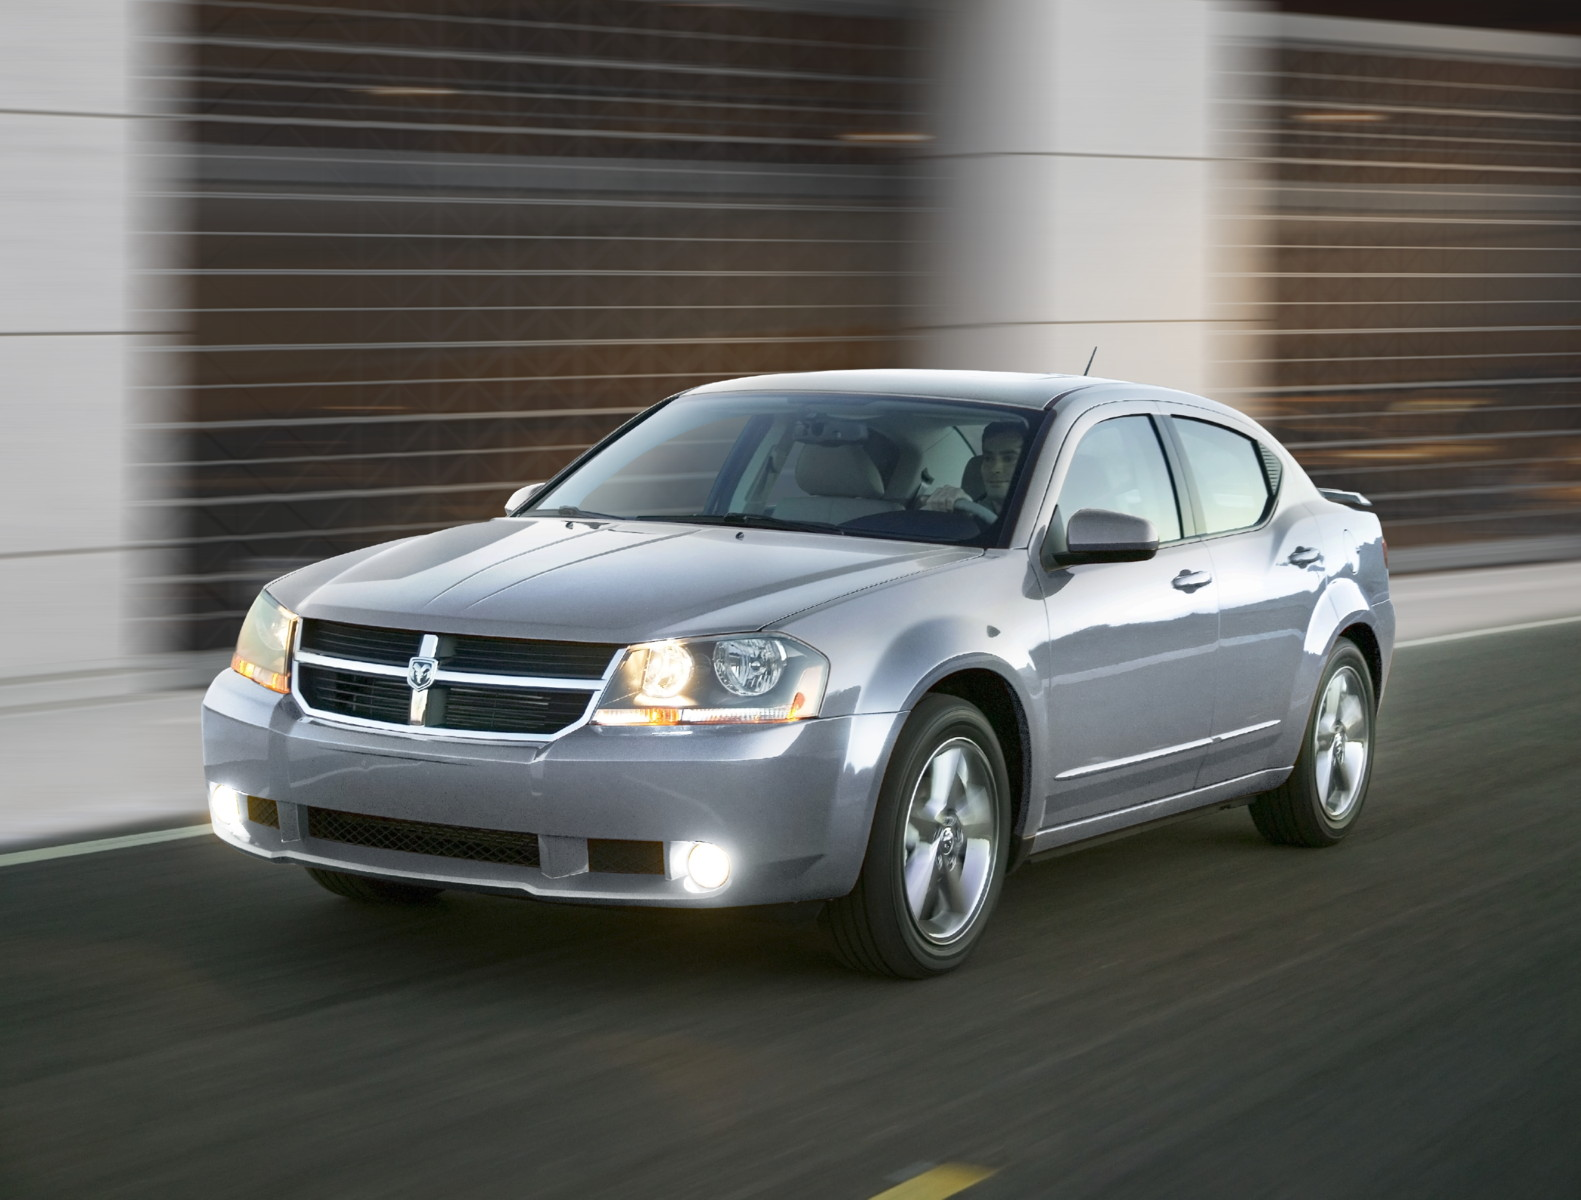 2010 Dodge Avenger Review Ratings Specs Prices And Photos The Car Connection